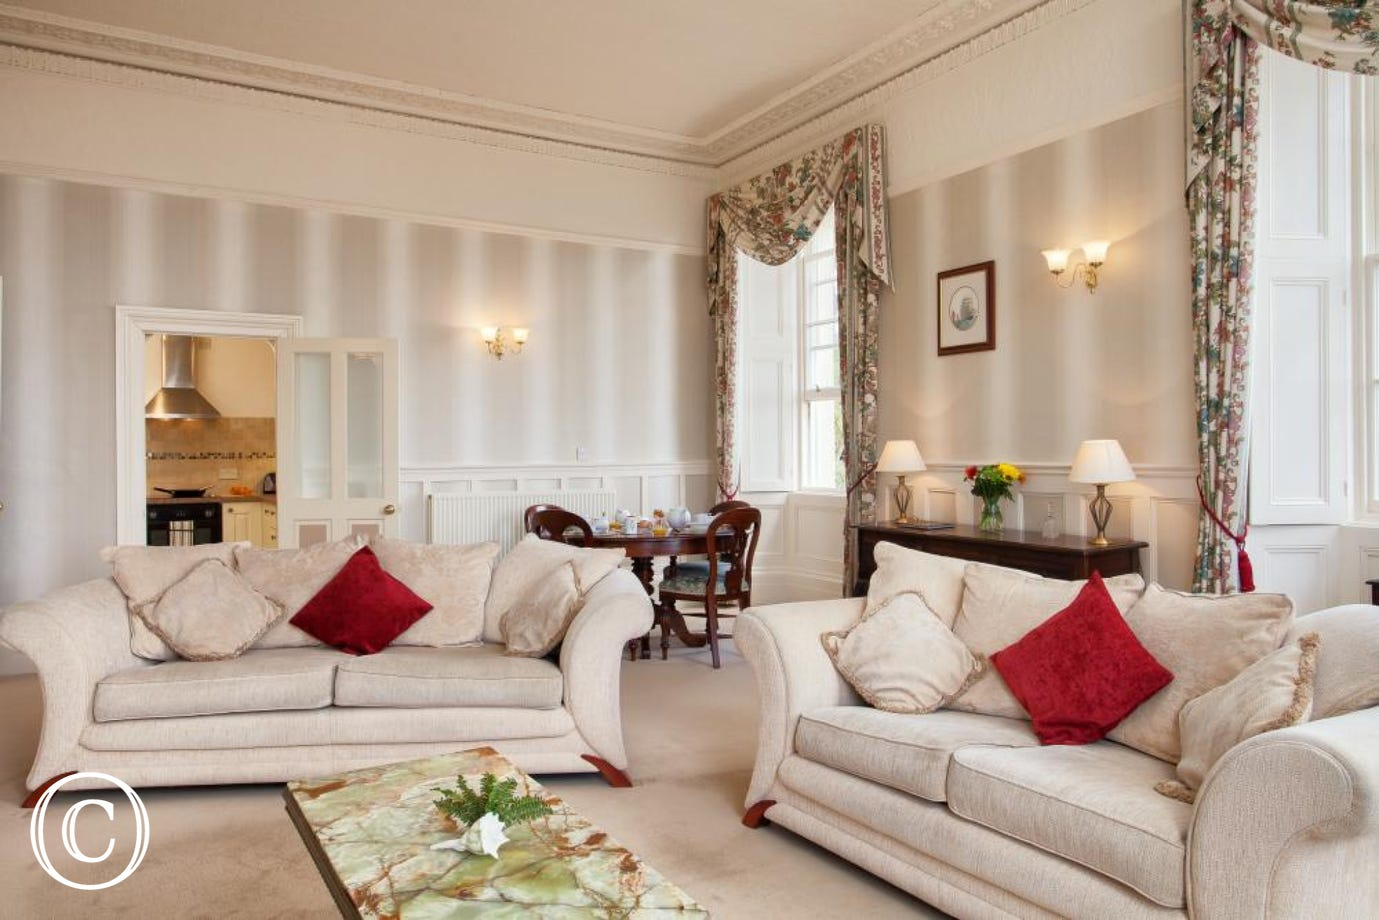 Meadfoot Beach Apartment, Torquay - Sofas in the lounge